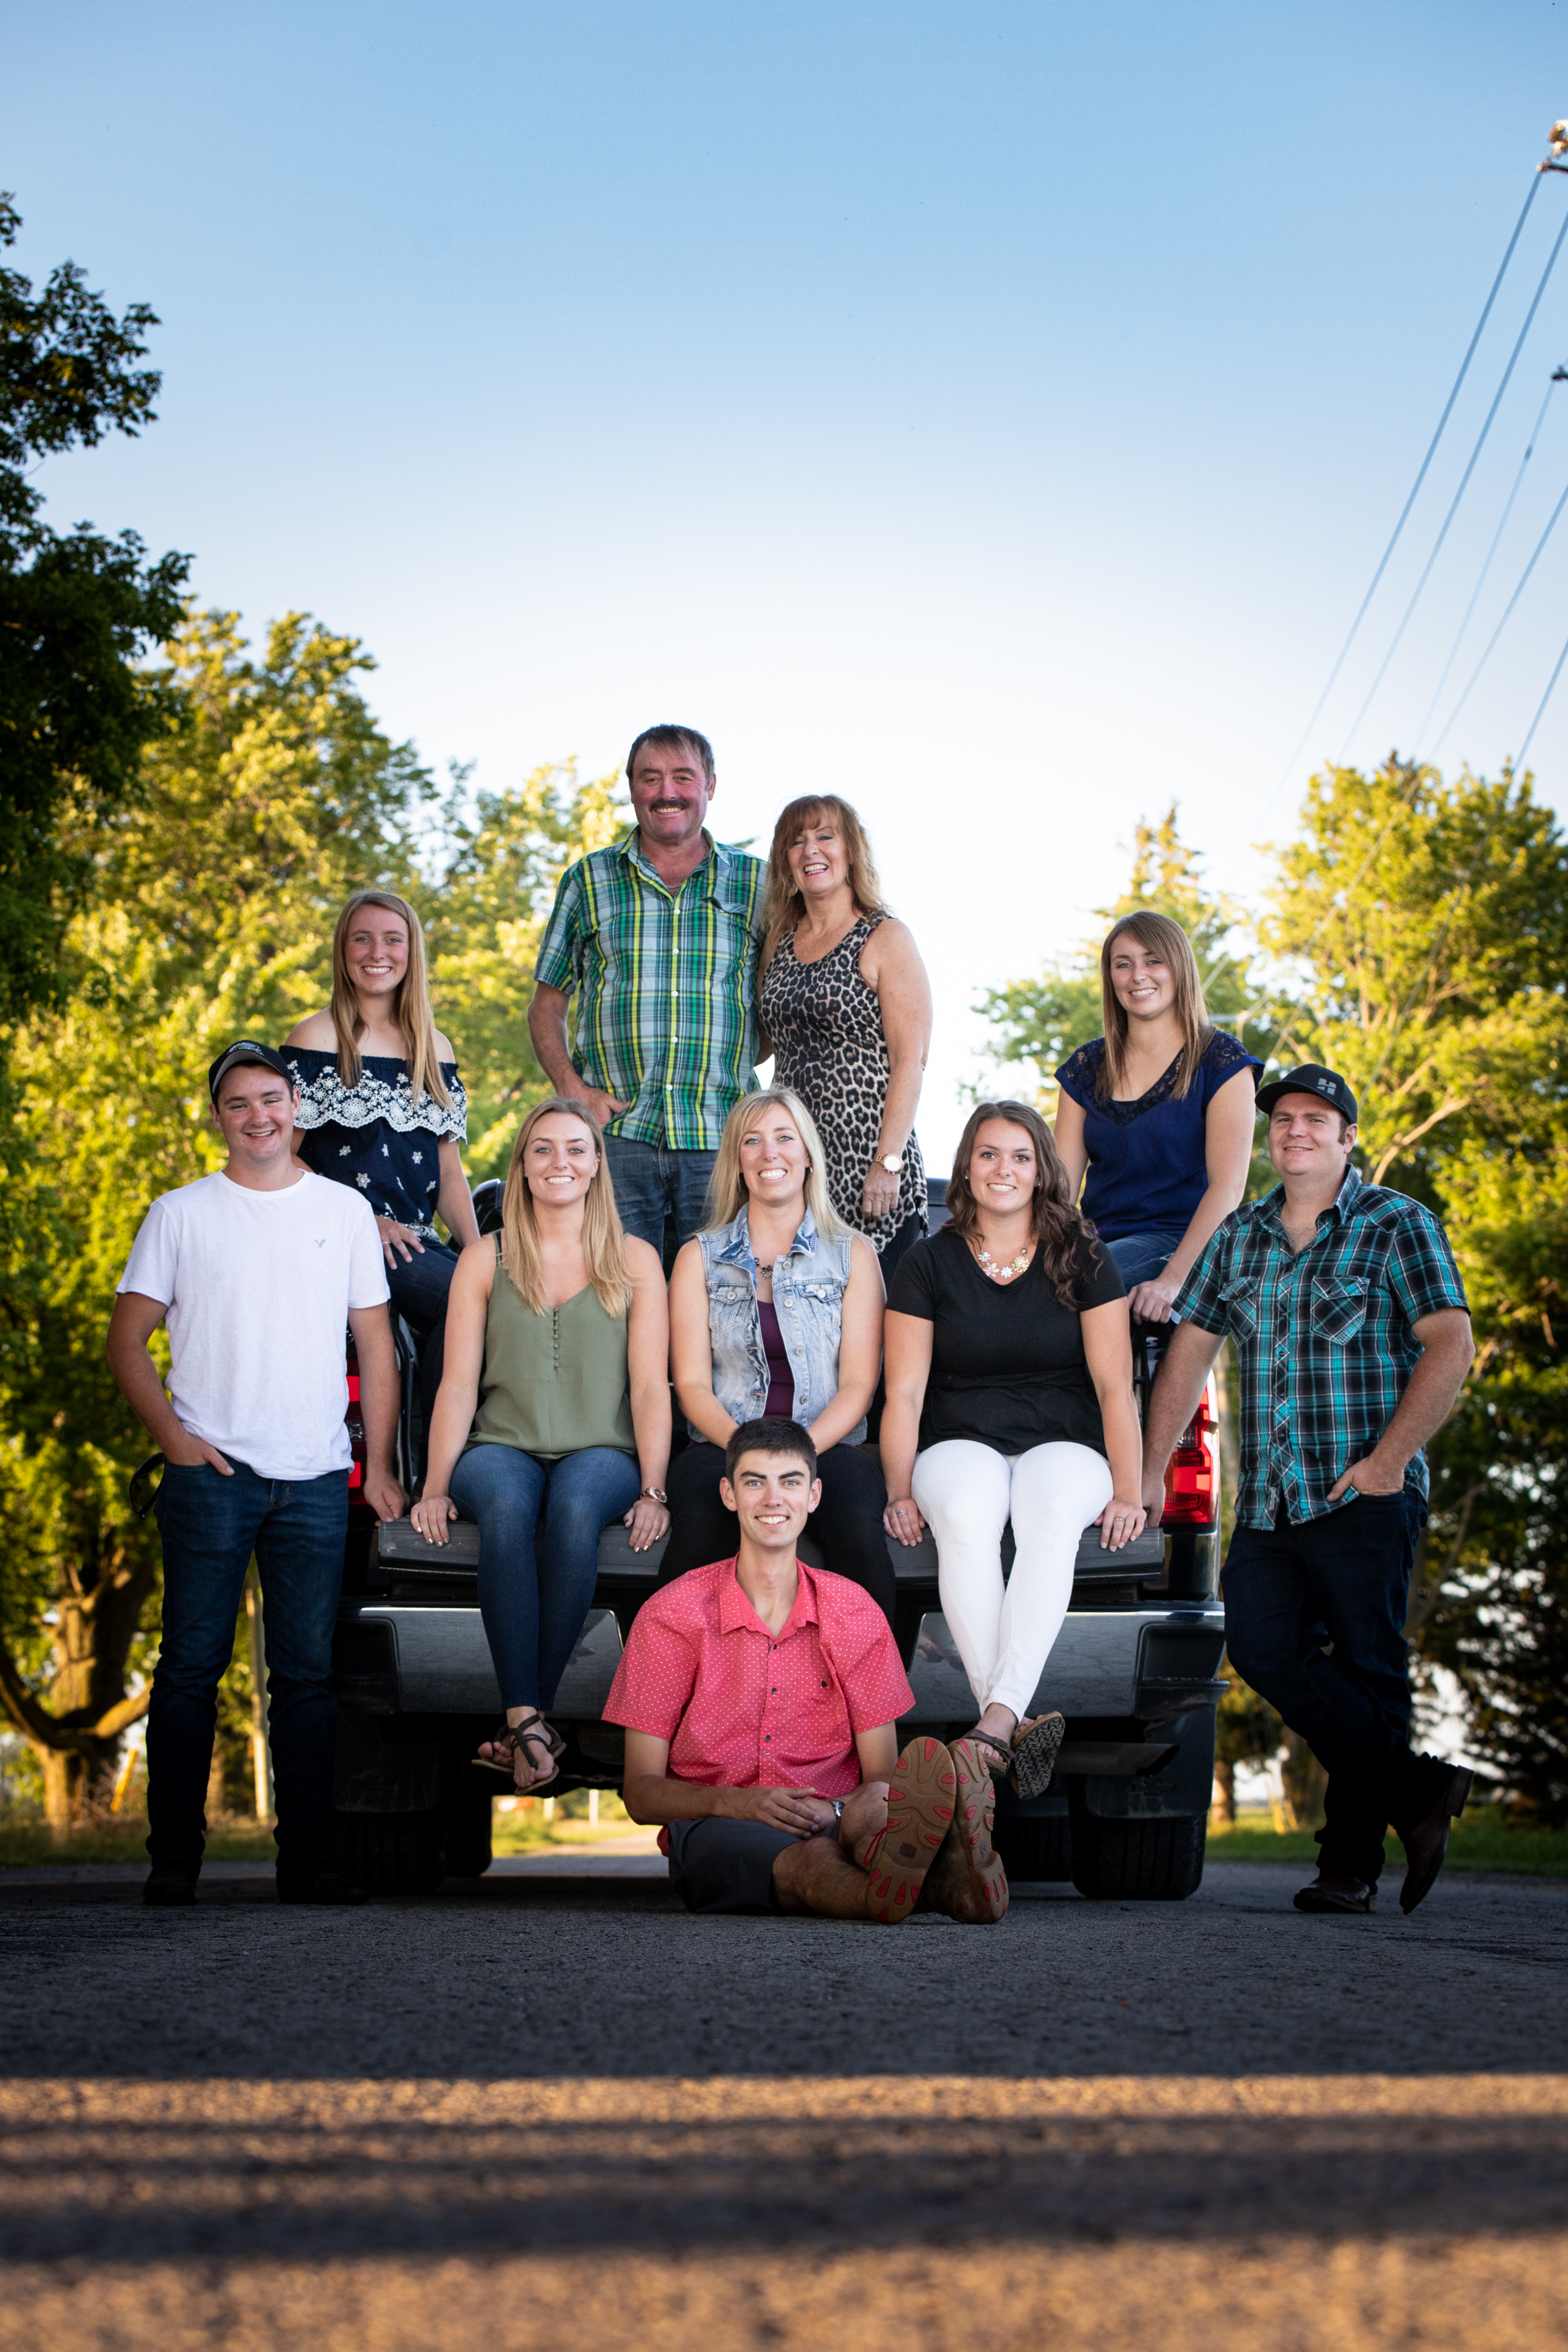 country-agricultural-photographer-Family-group-Jodie-Aldred-Photography-Elgin-Huron-Middlesex-Family-country-rural-London-Ontario-dirt-road-pickup-truck.jpg